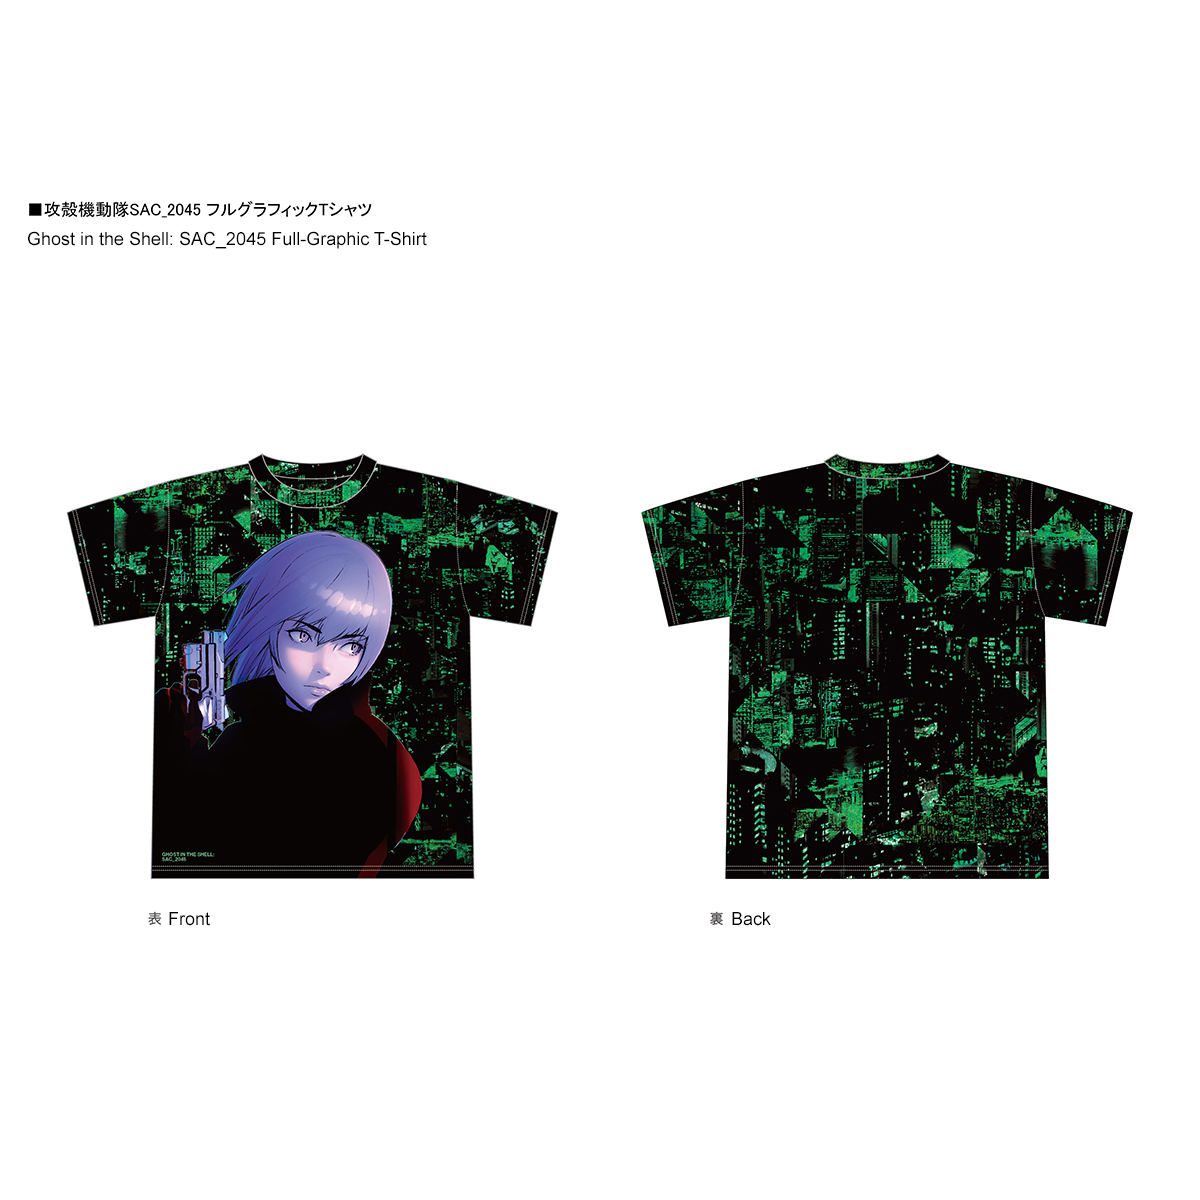 GHOST IN THE SHELL: SAC_2045 Full Graphic T-Shirt